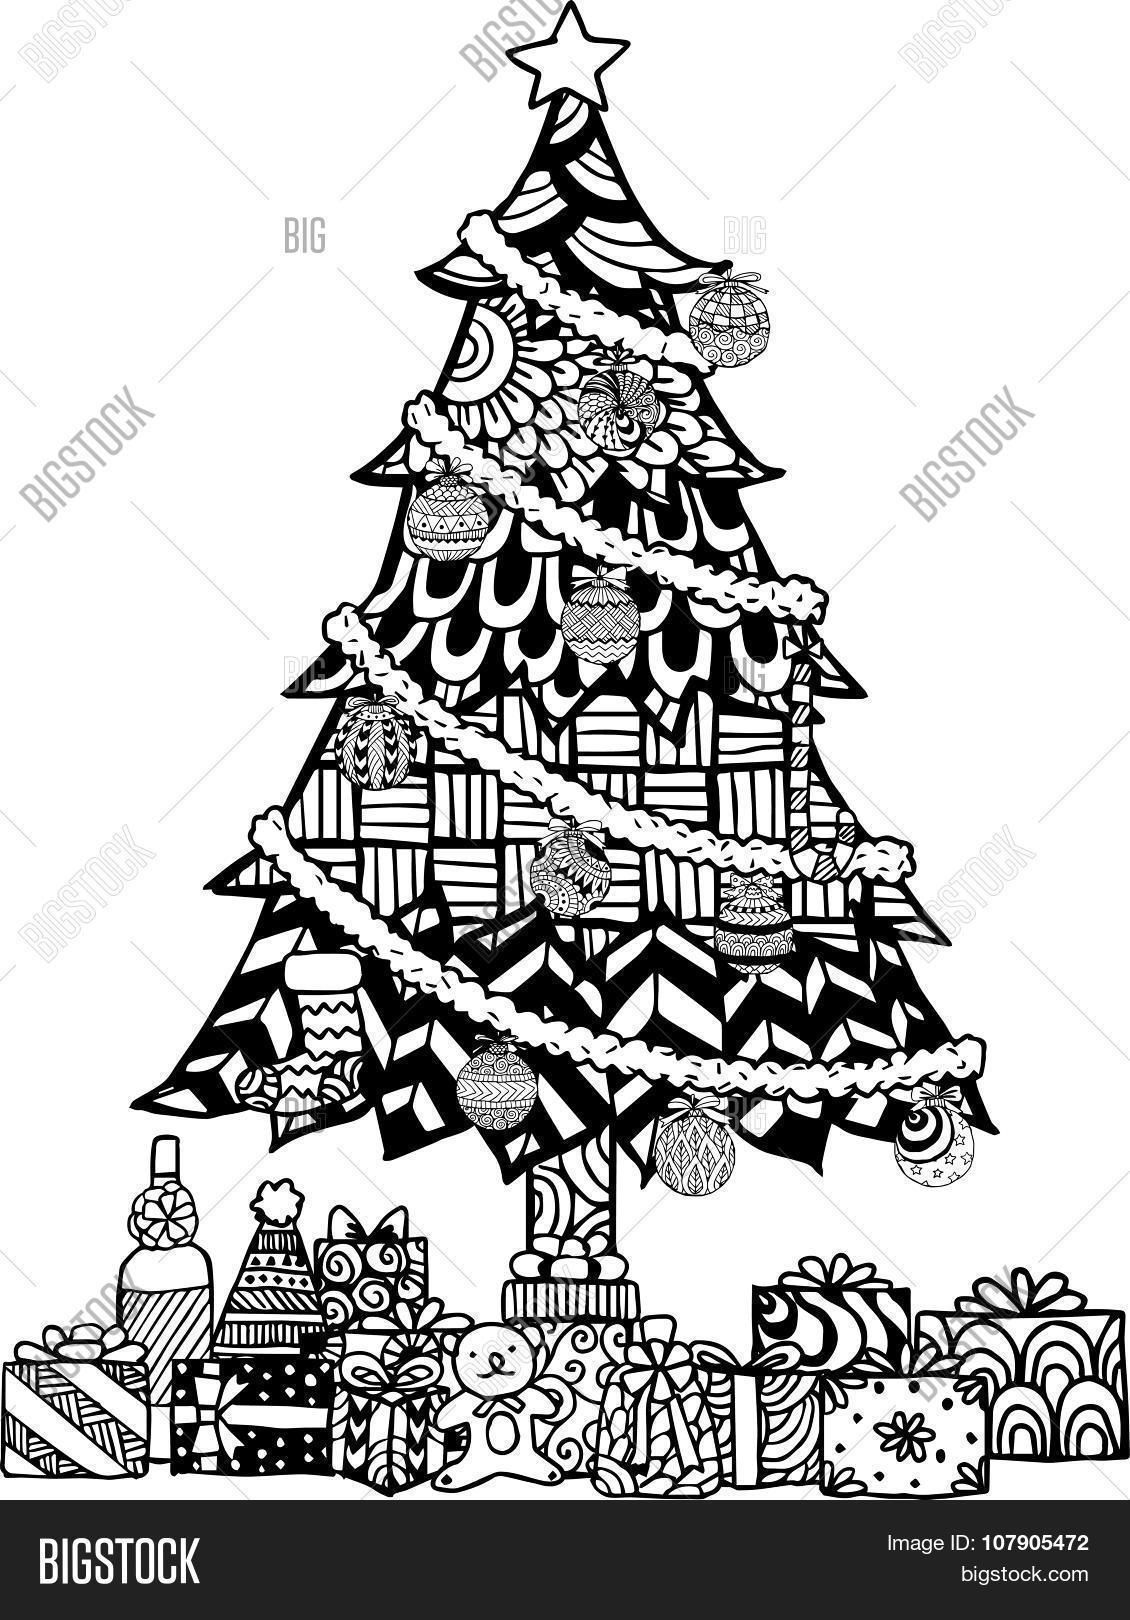 Hand Drawn Christmas Vector & Photo (Free Trial) | Bigstock